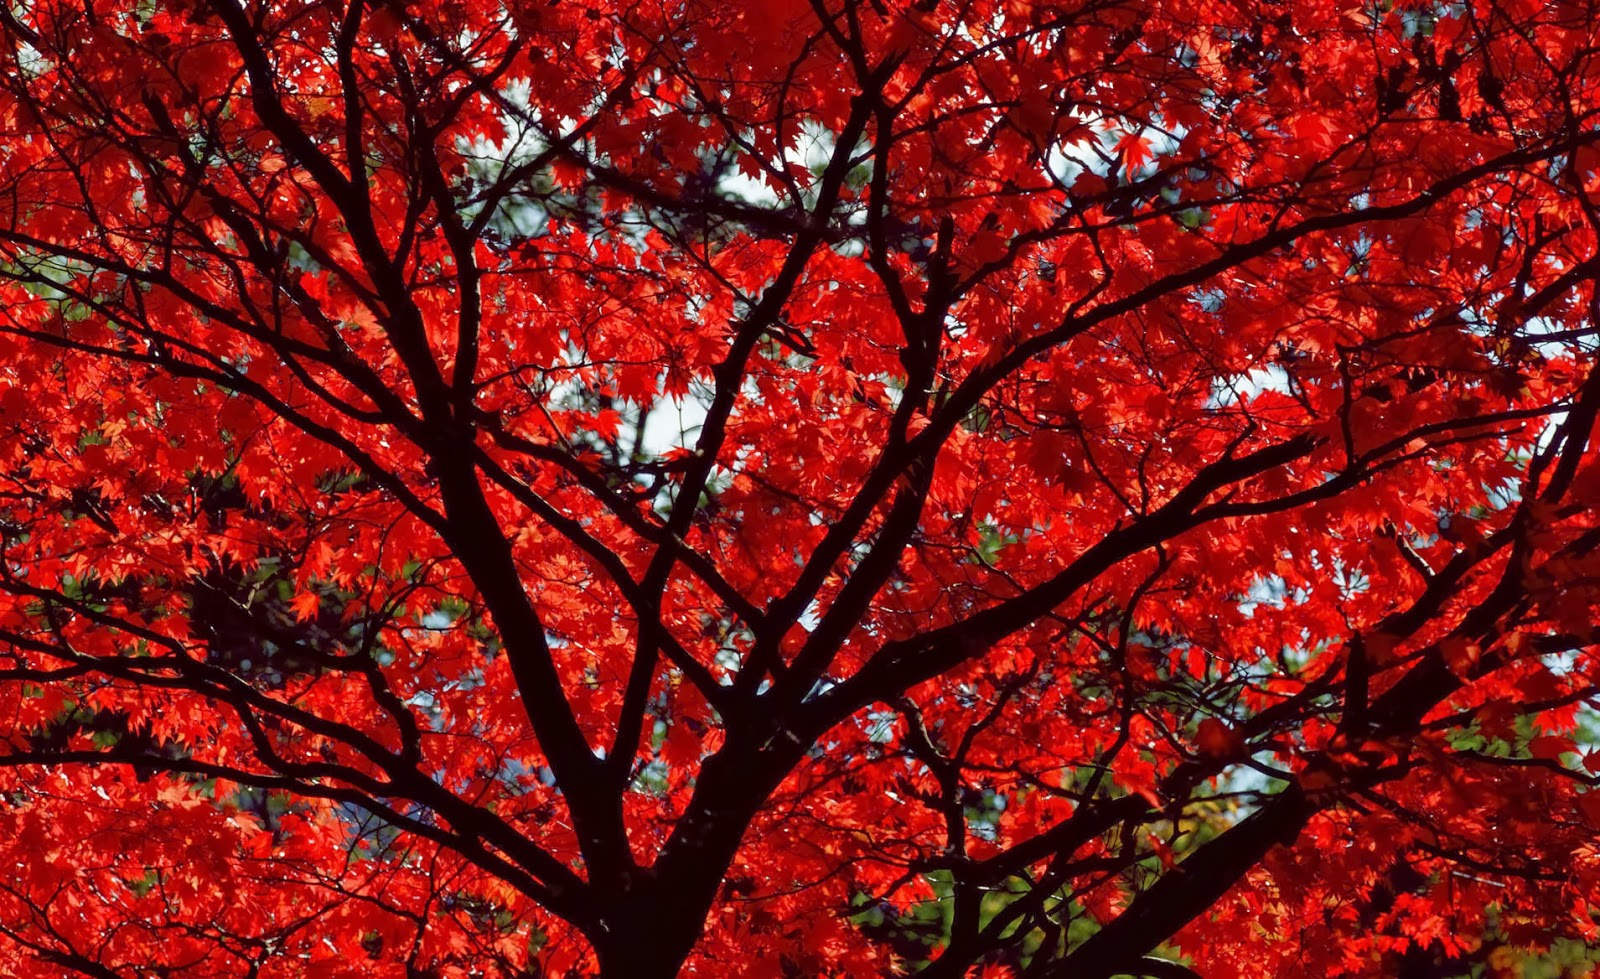 HD Wallpapers Desktop: Autumn Wallpaper With Red Leaves